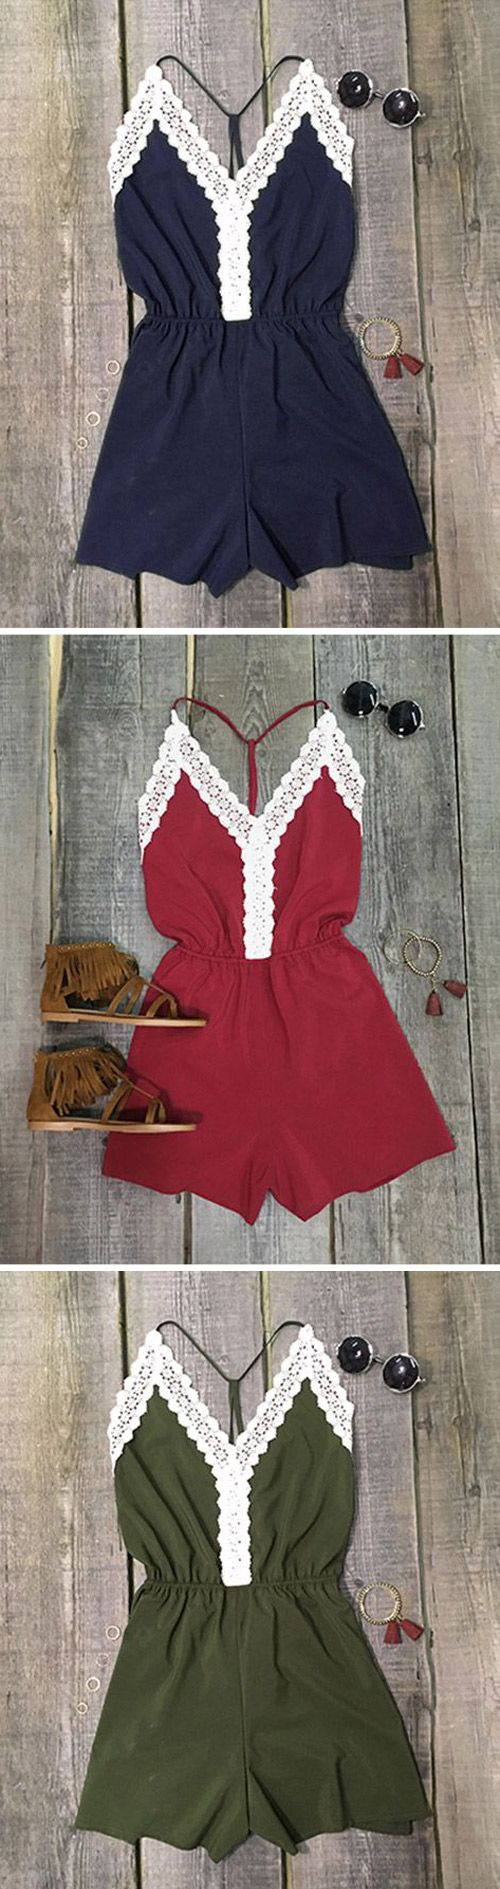 Give those shoulders the spotlight, ladies. Hot Sale Now! This ultra classic fit and flare is everything you need! Get more cute rompers at Cupshe.com !